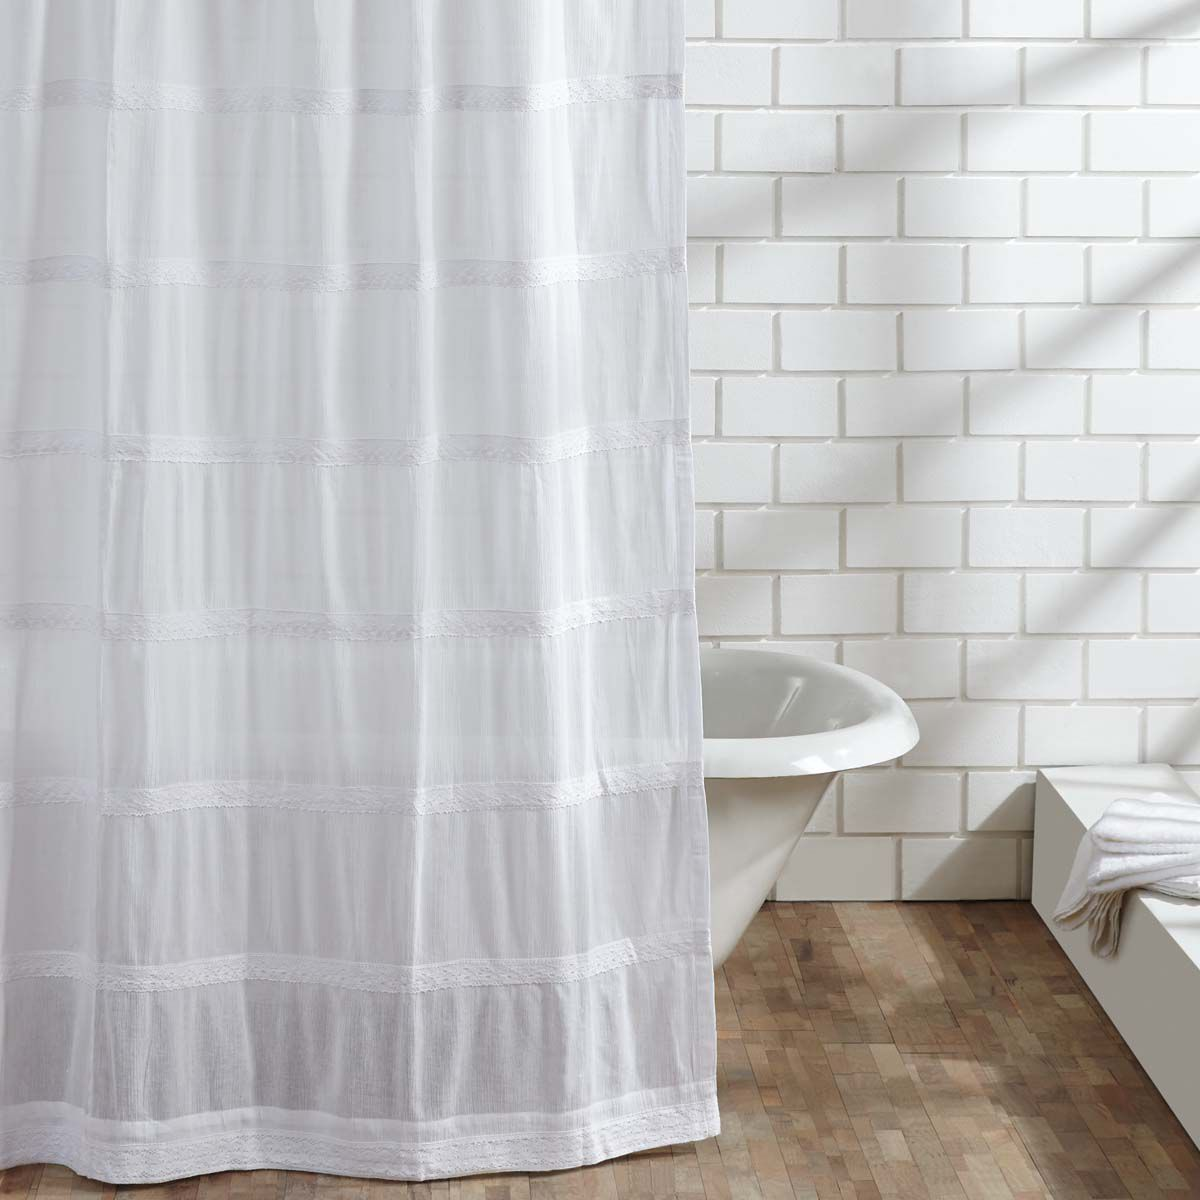 French country shower curtain - Quinn White Old World Charm Lace Shower Curtain